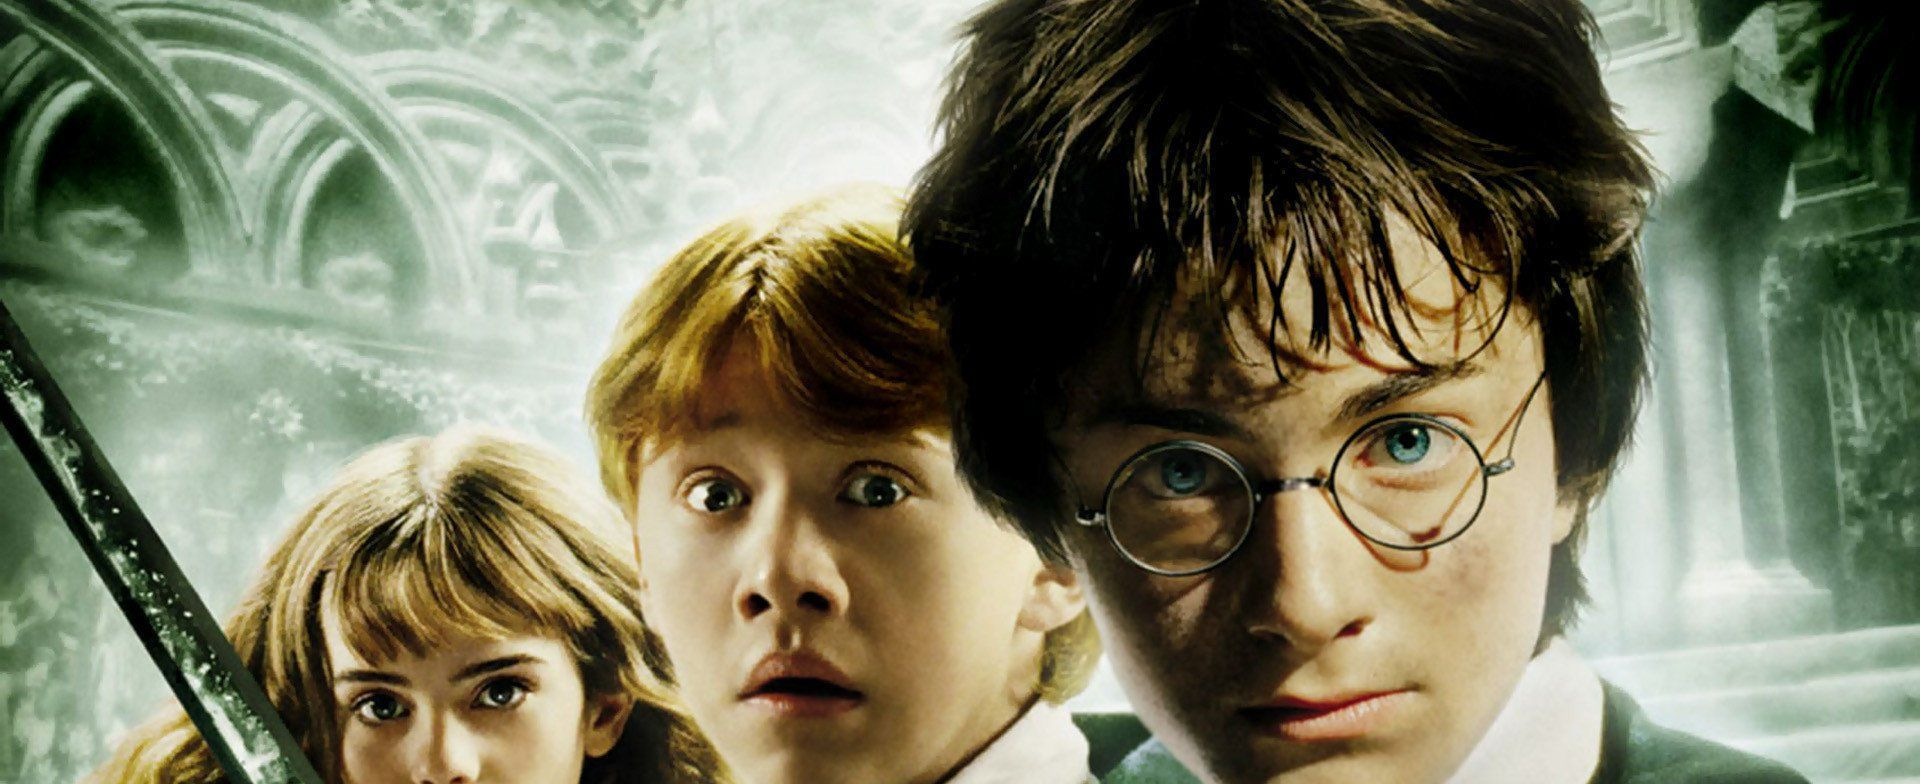 La Chambre Bleue Streaming Vf Harry Potter Et La Chambre Des Secrets 2002 Streaming